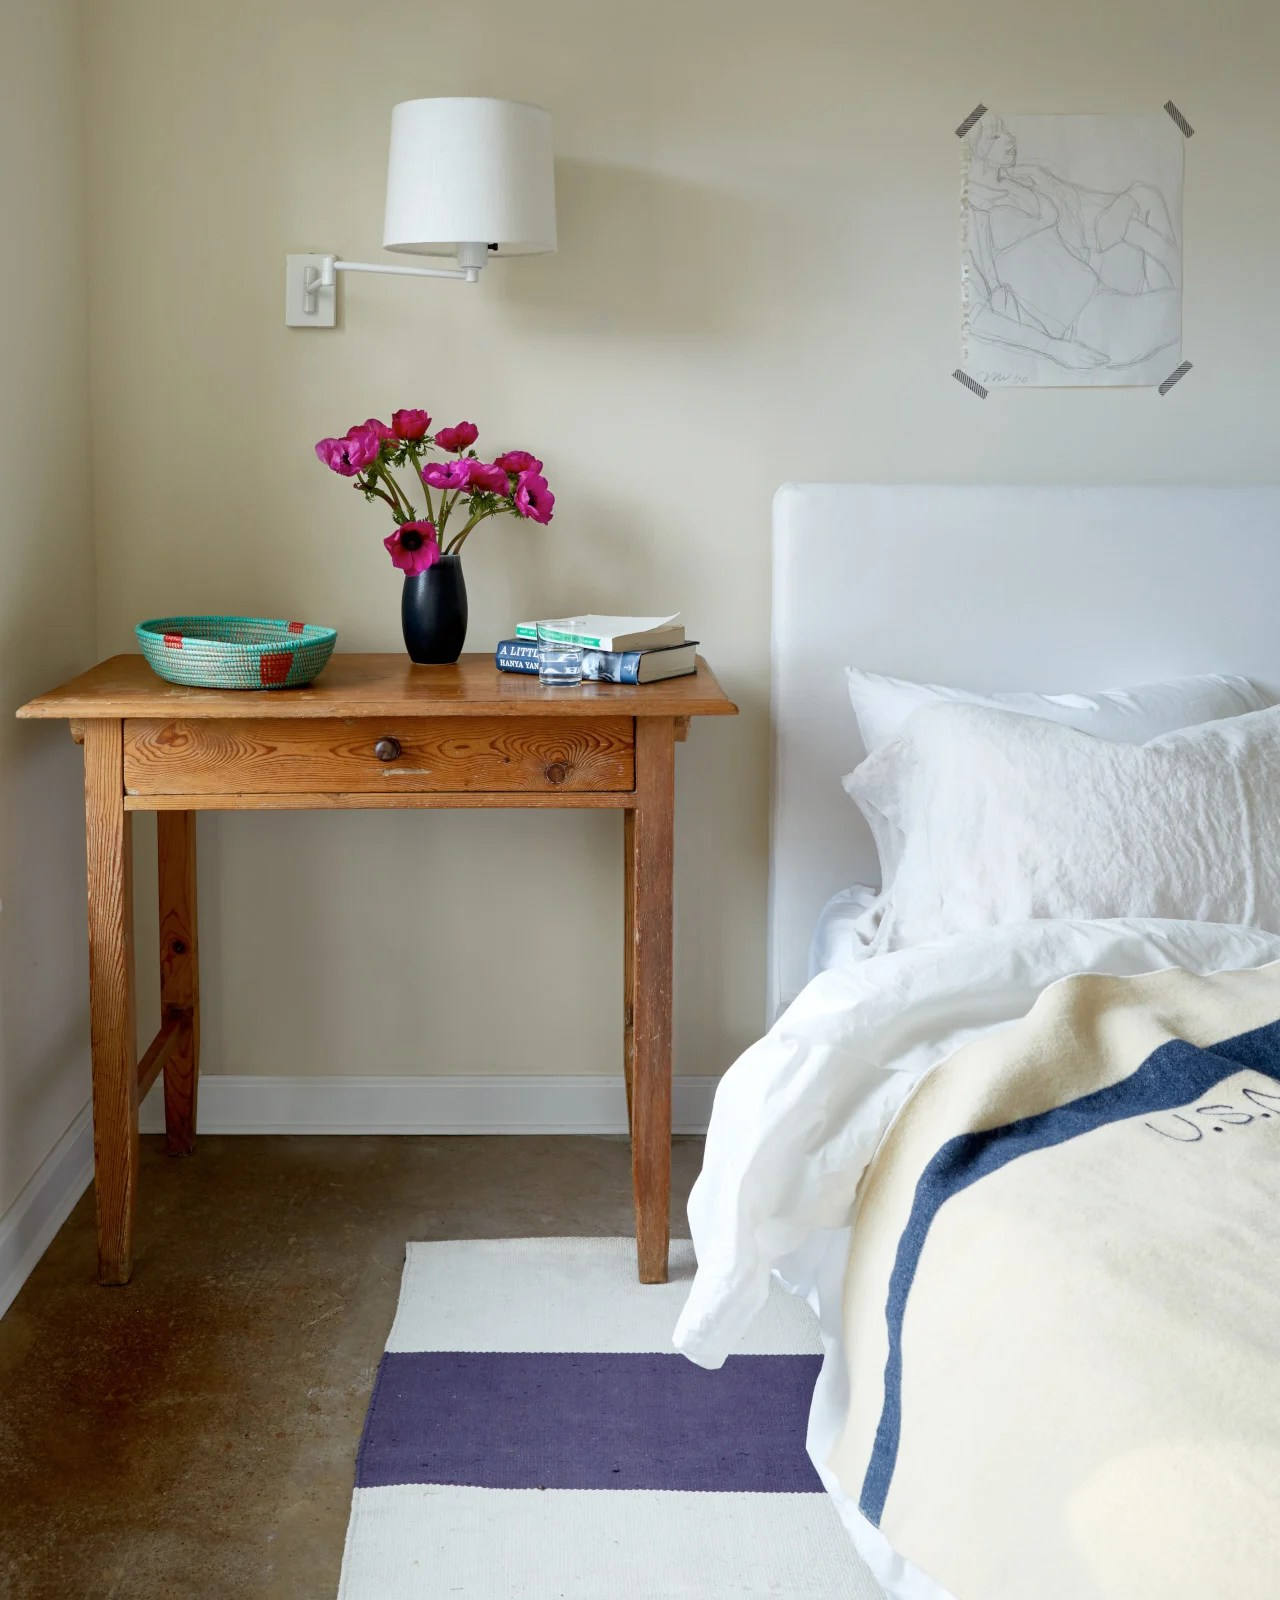 Image of a bedroom from Cup of Jo website